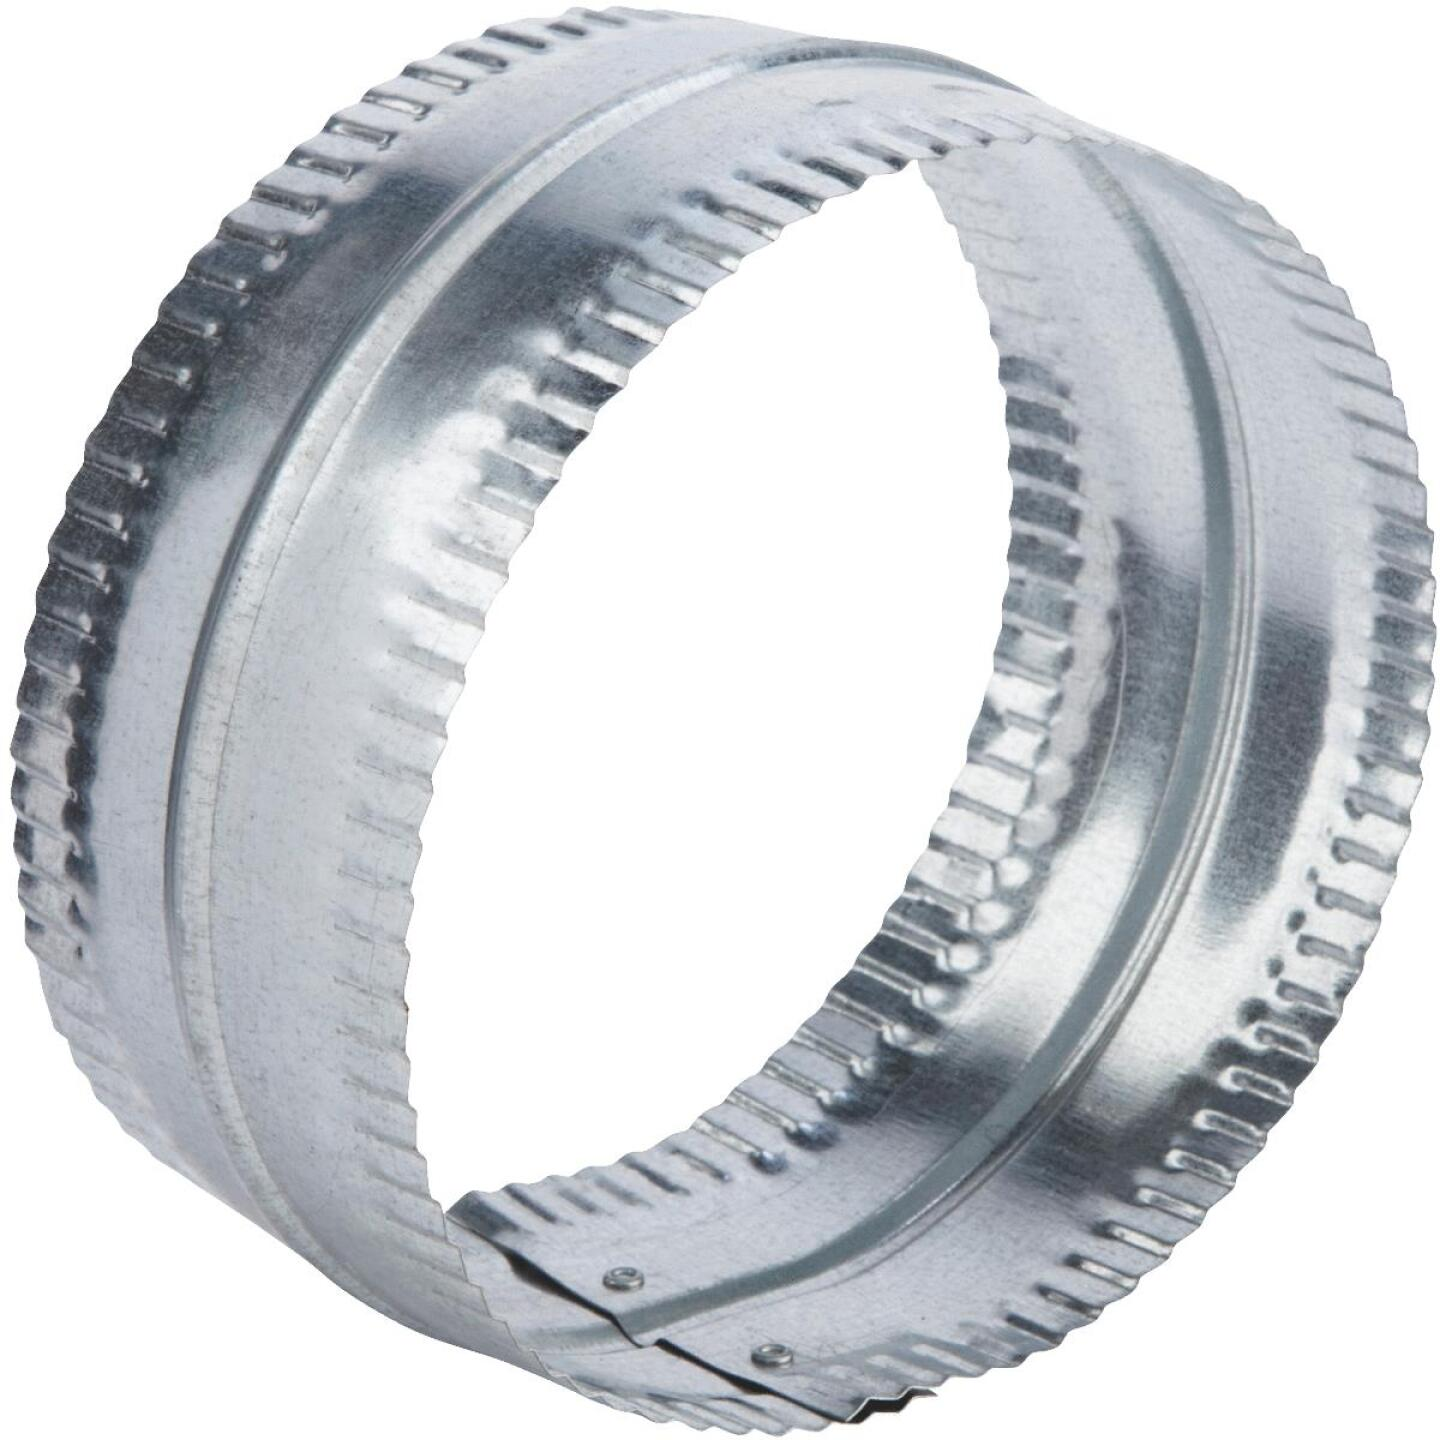 Lambro 5 In. Galvanized Steel Flexible Duct Connector Image 1